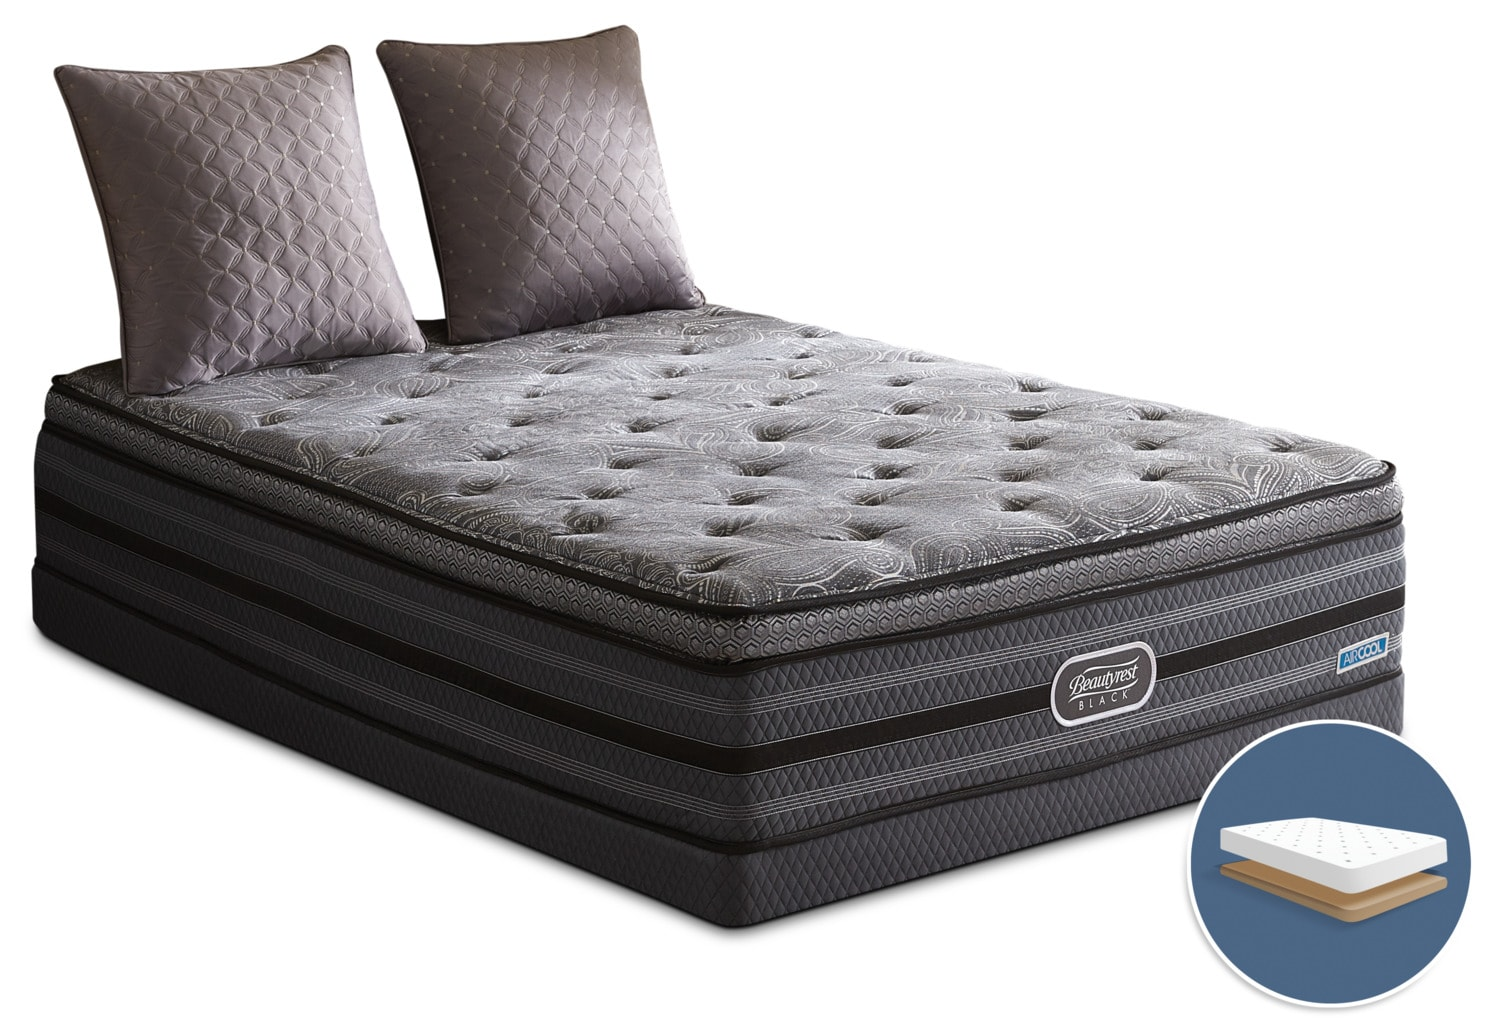 Beautyrest Black Legendary Comfort Top Luxury Firm Low Profile King Mattress Set The Brick